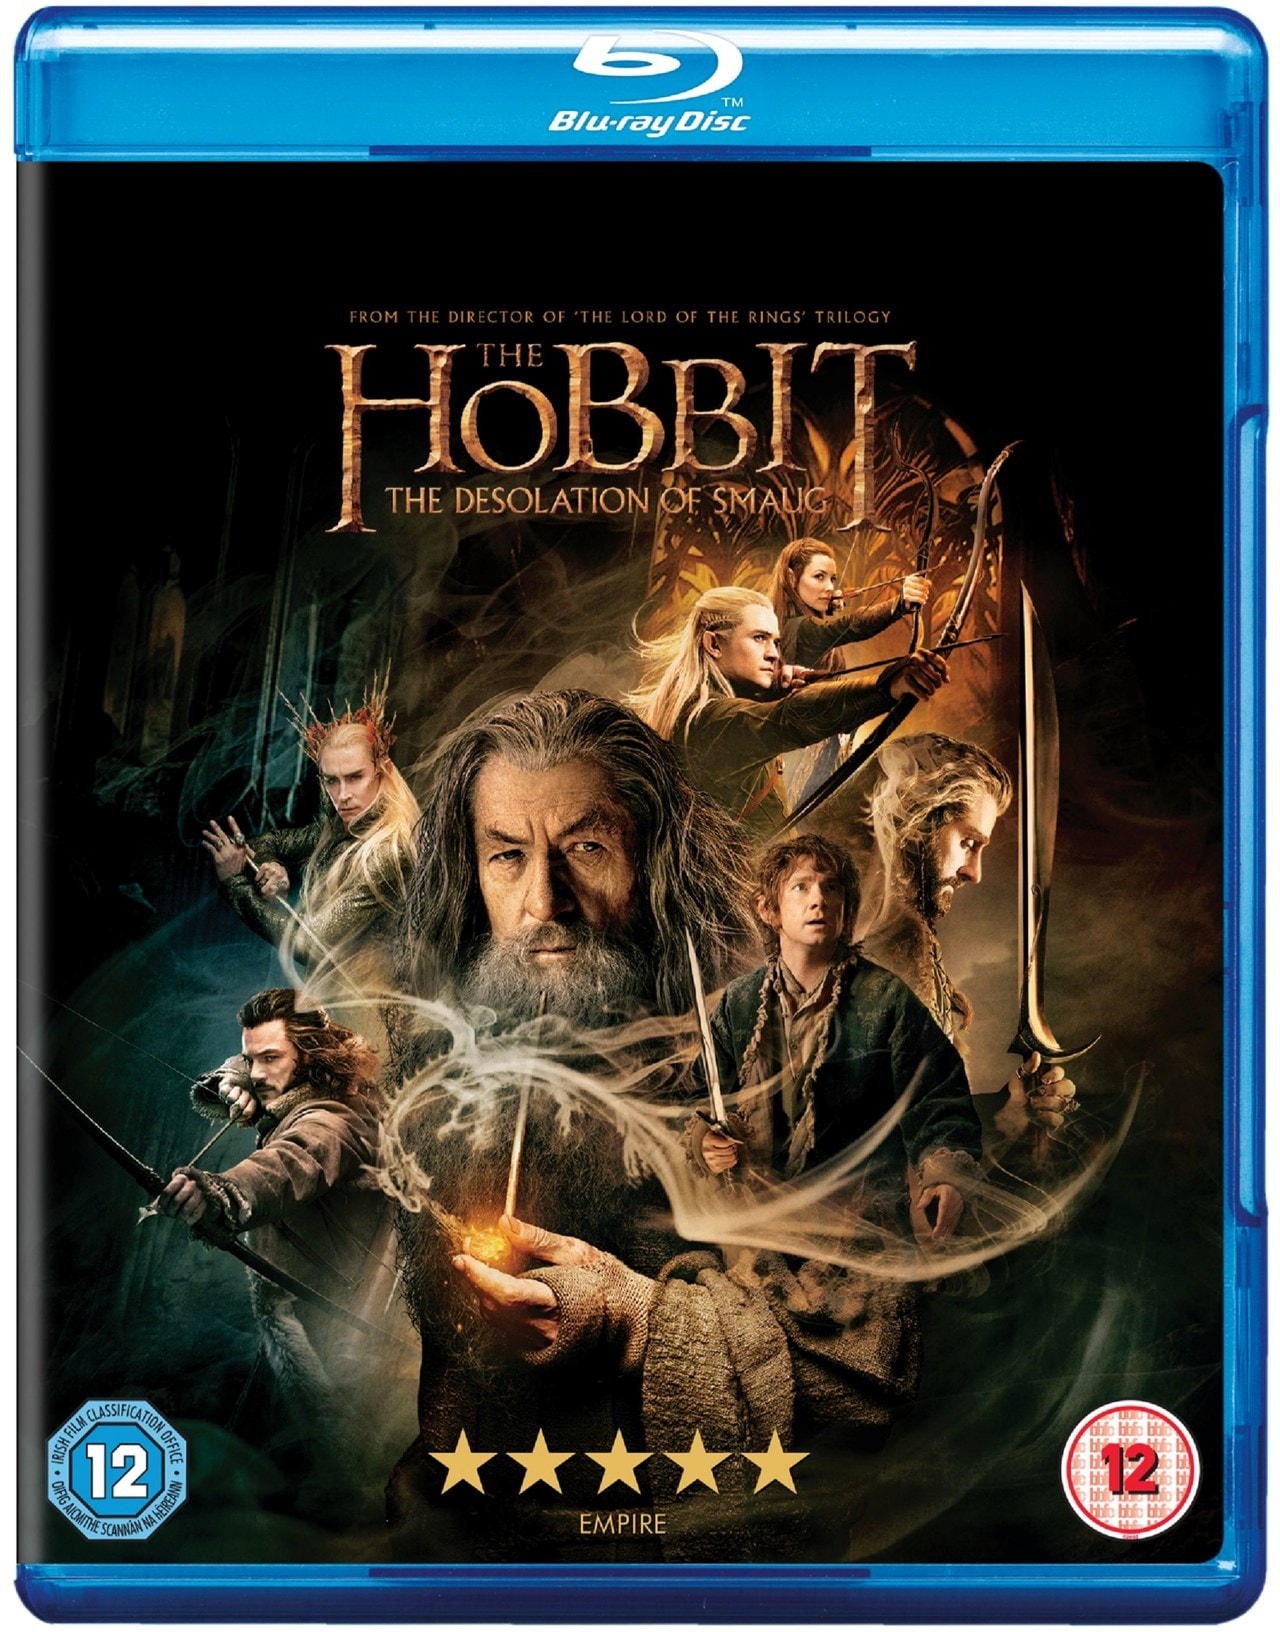 The Hobbit: The Desolation of Smaug - 1